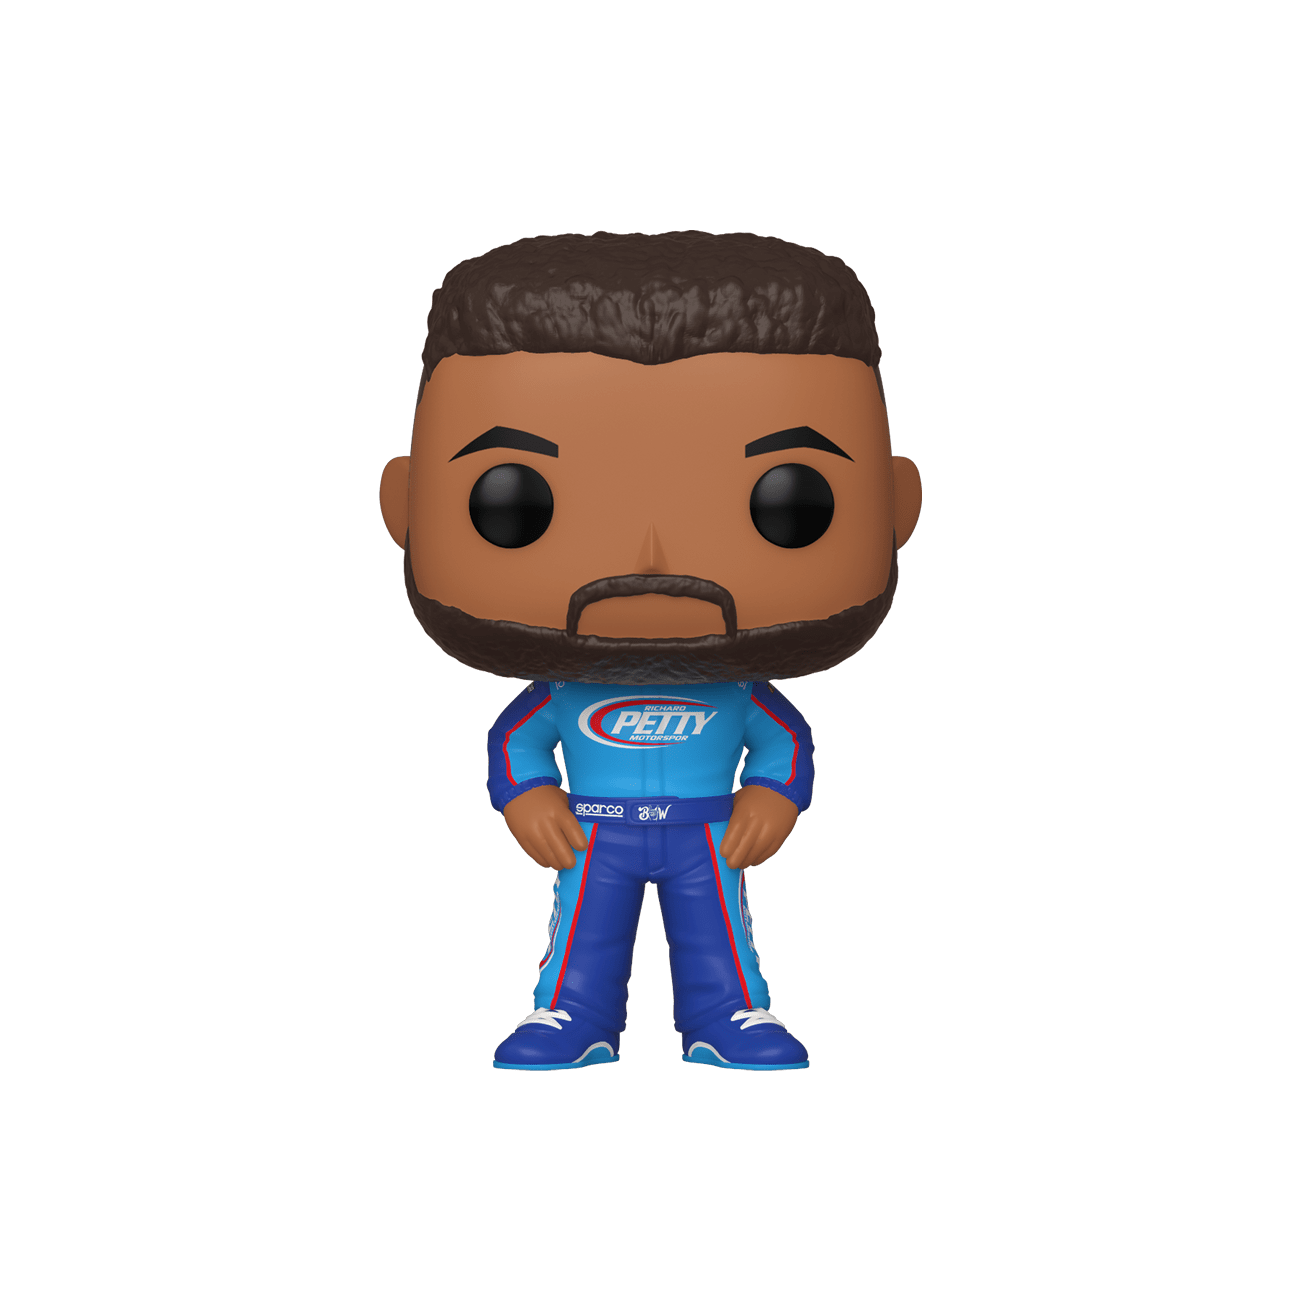 NASCAR - Bubba Wallace Jr. Pop! Vinyl Figure